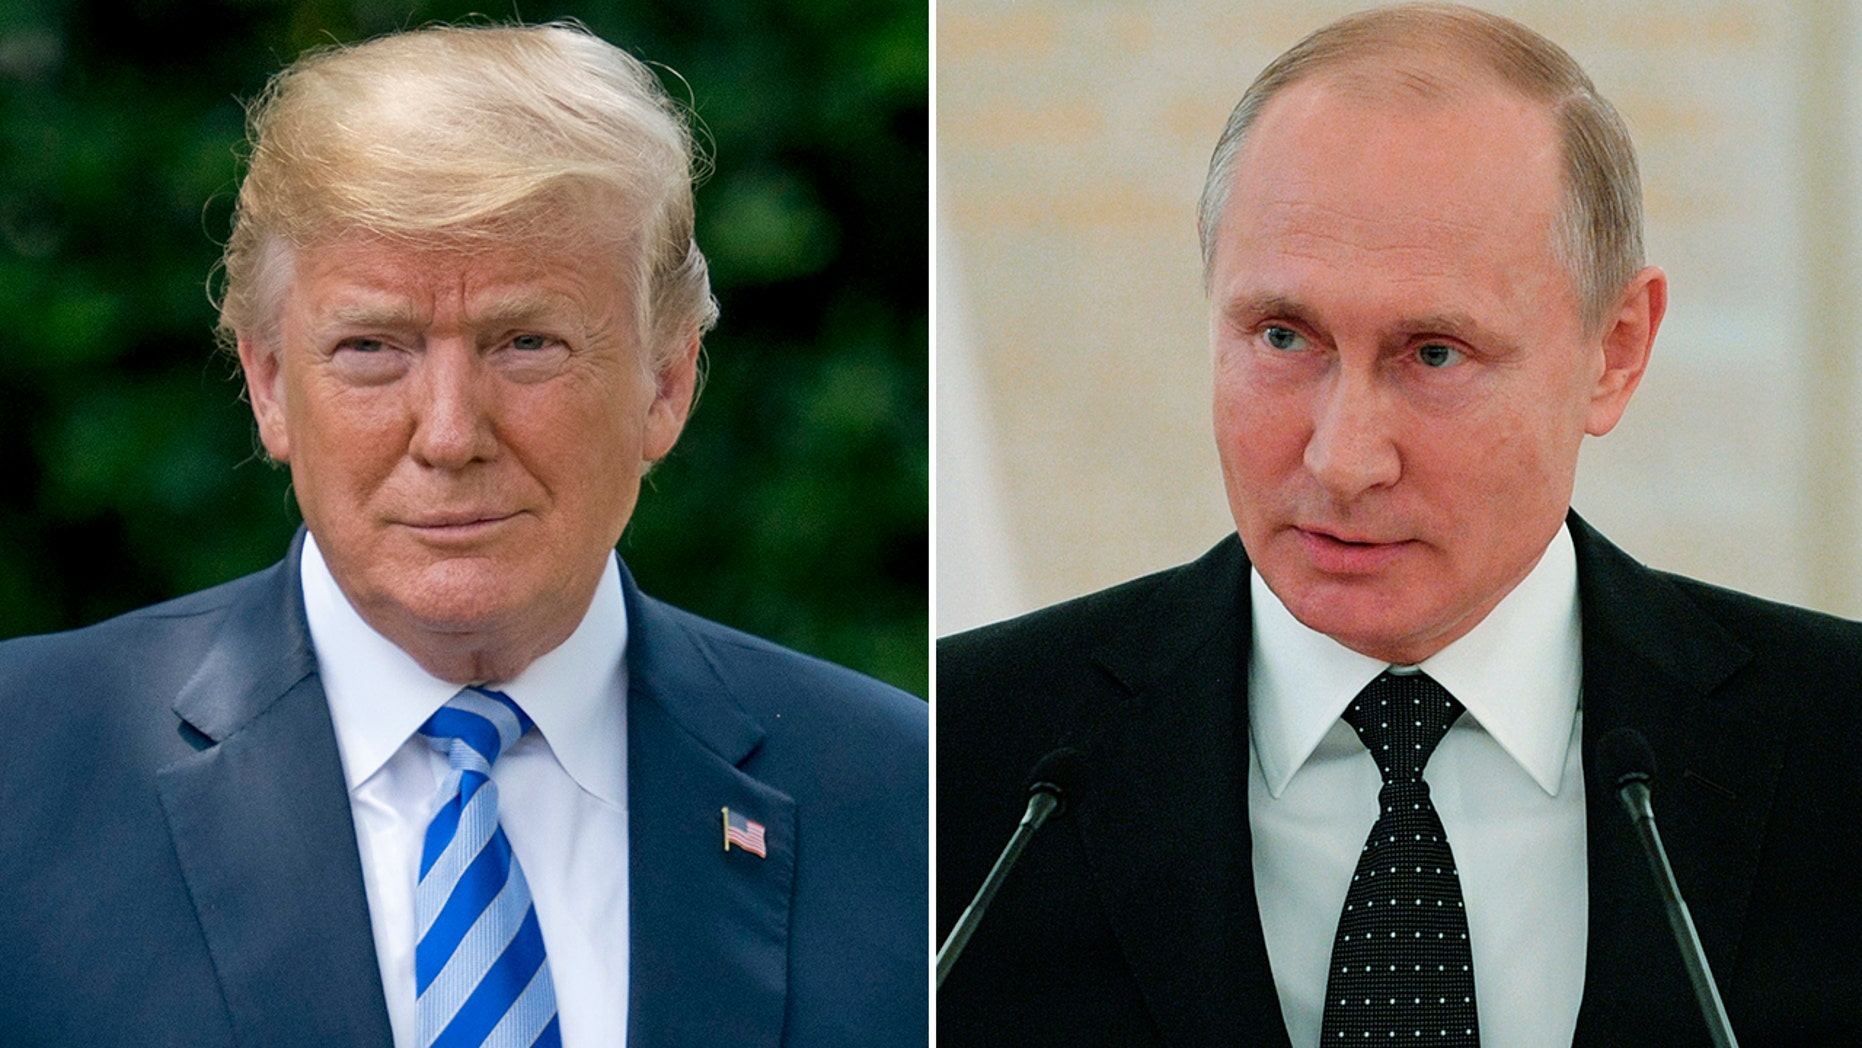 President Trump, left, is slated to meet with Russian President Vladimir Putin, right, next Monday.